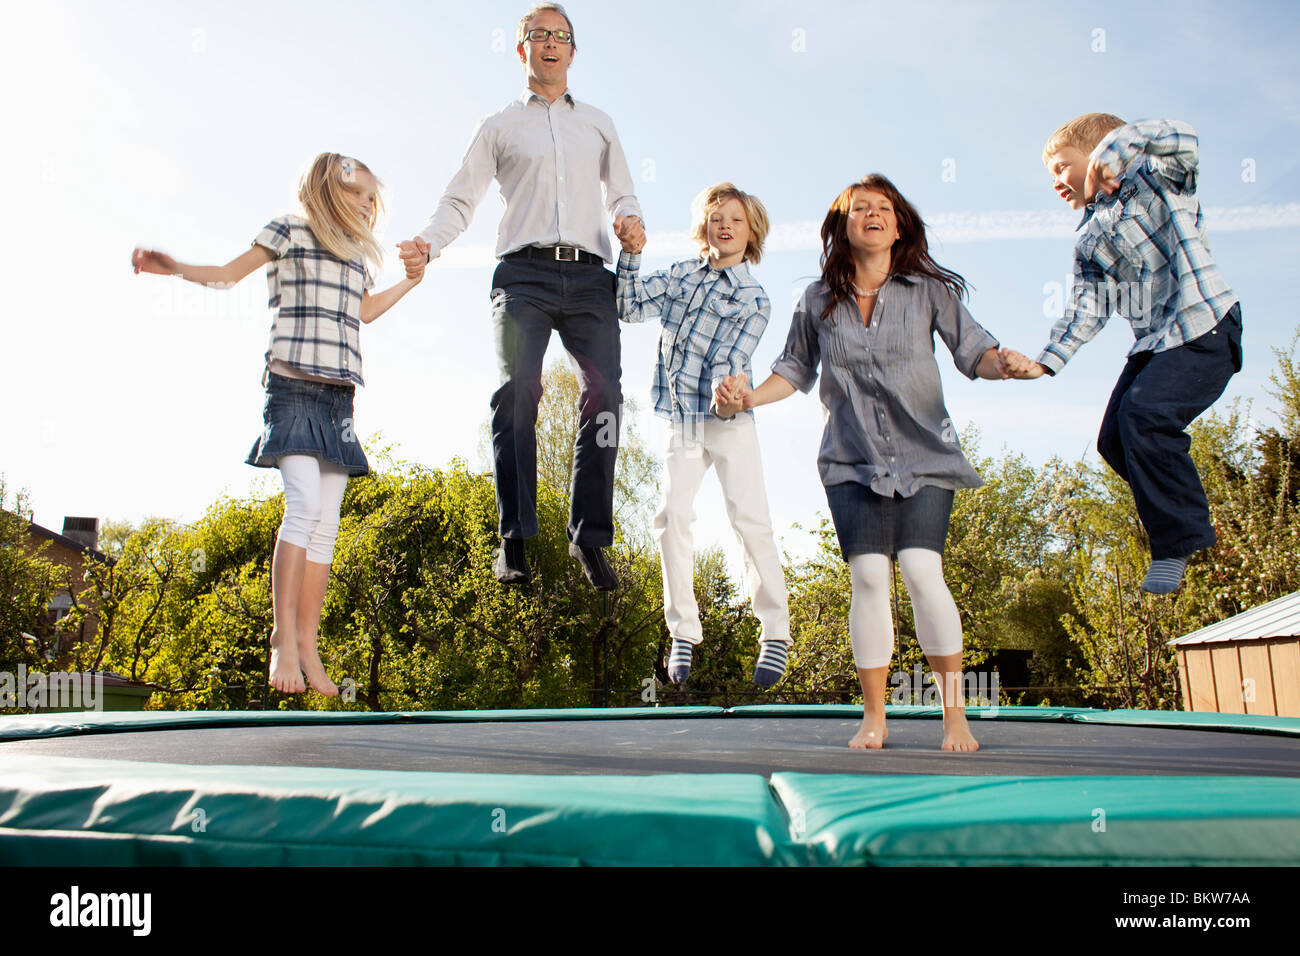 Family bouncing - Stock Image